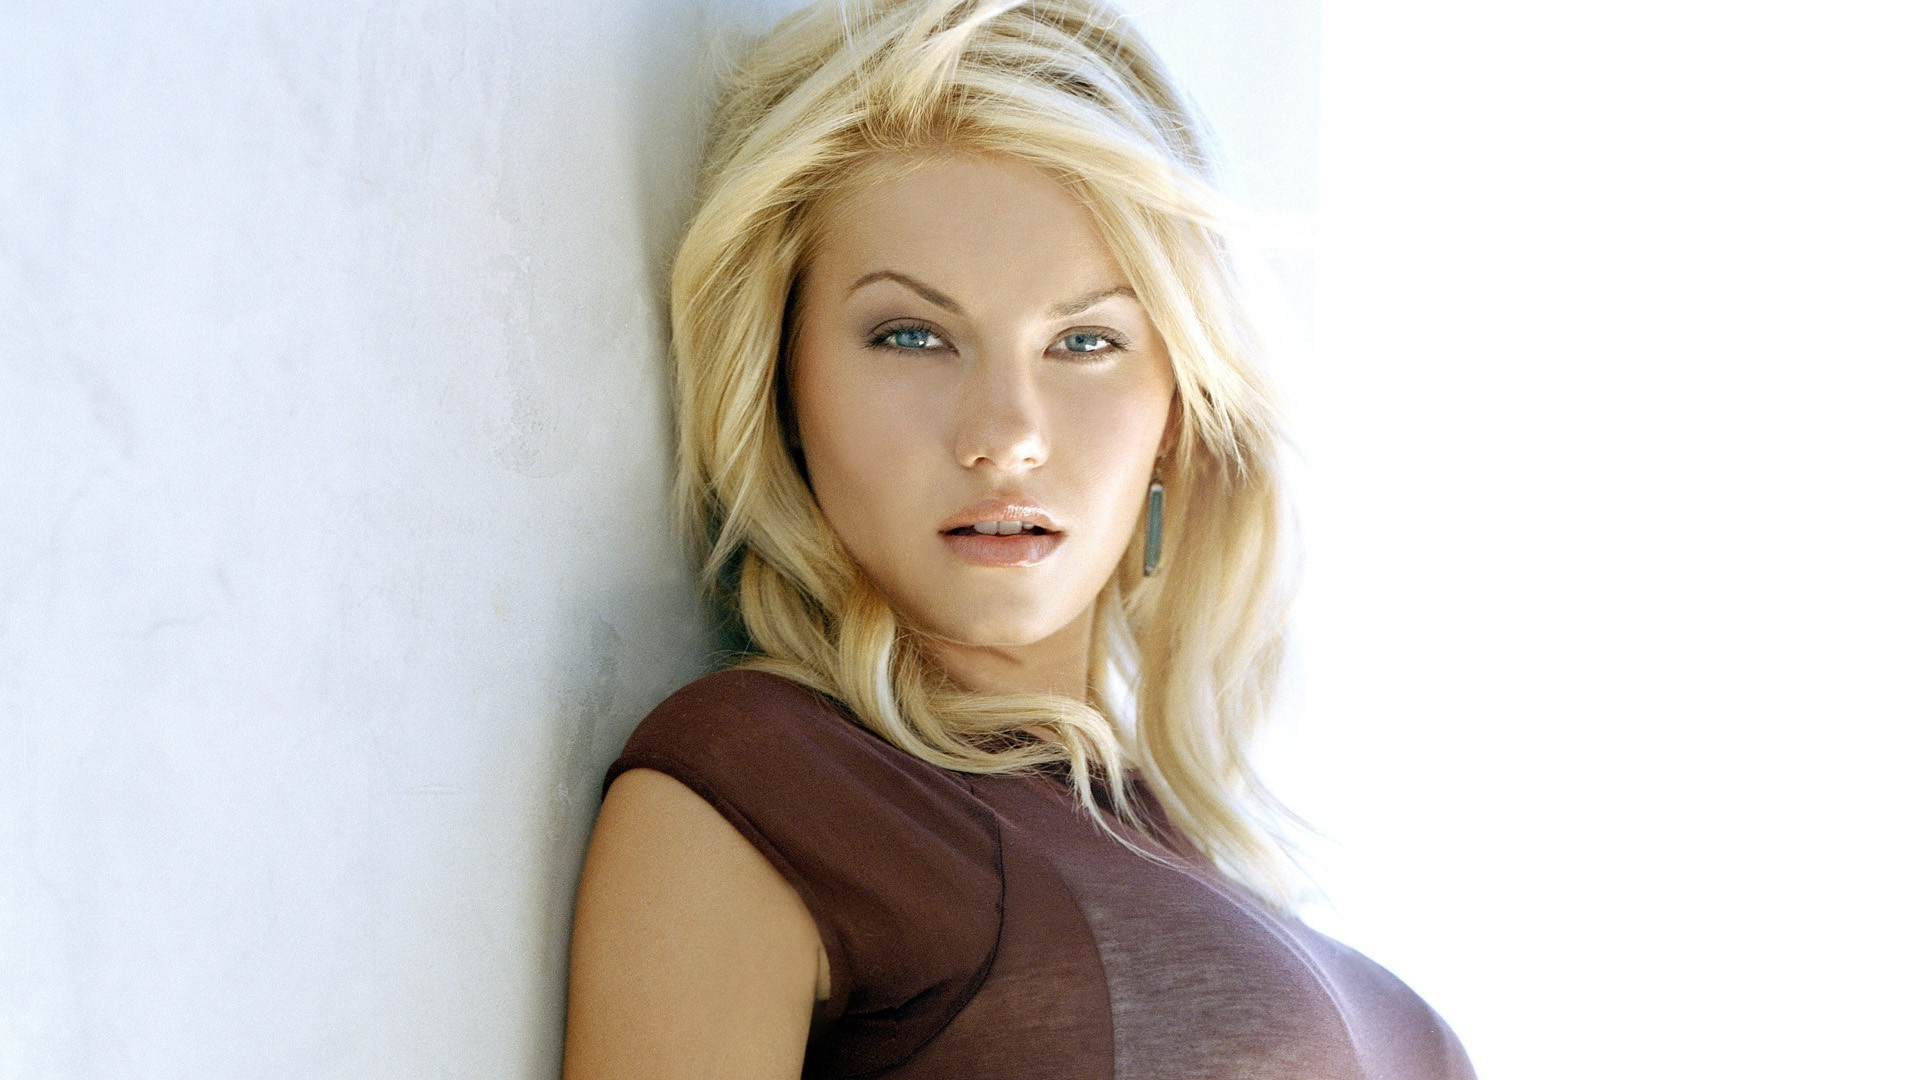 Best Colors For 2017 Elisha Cuthbert Wallpaper 1920x1080 49344